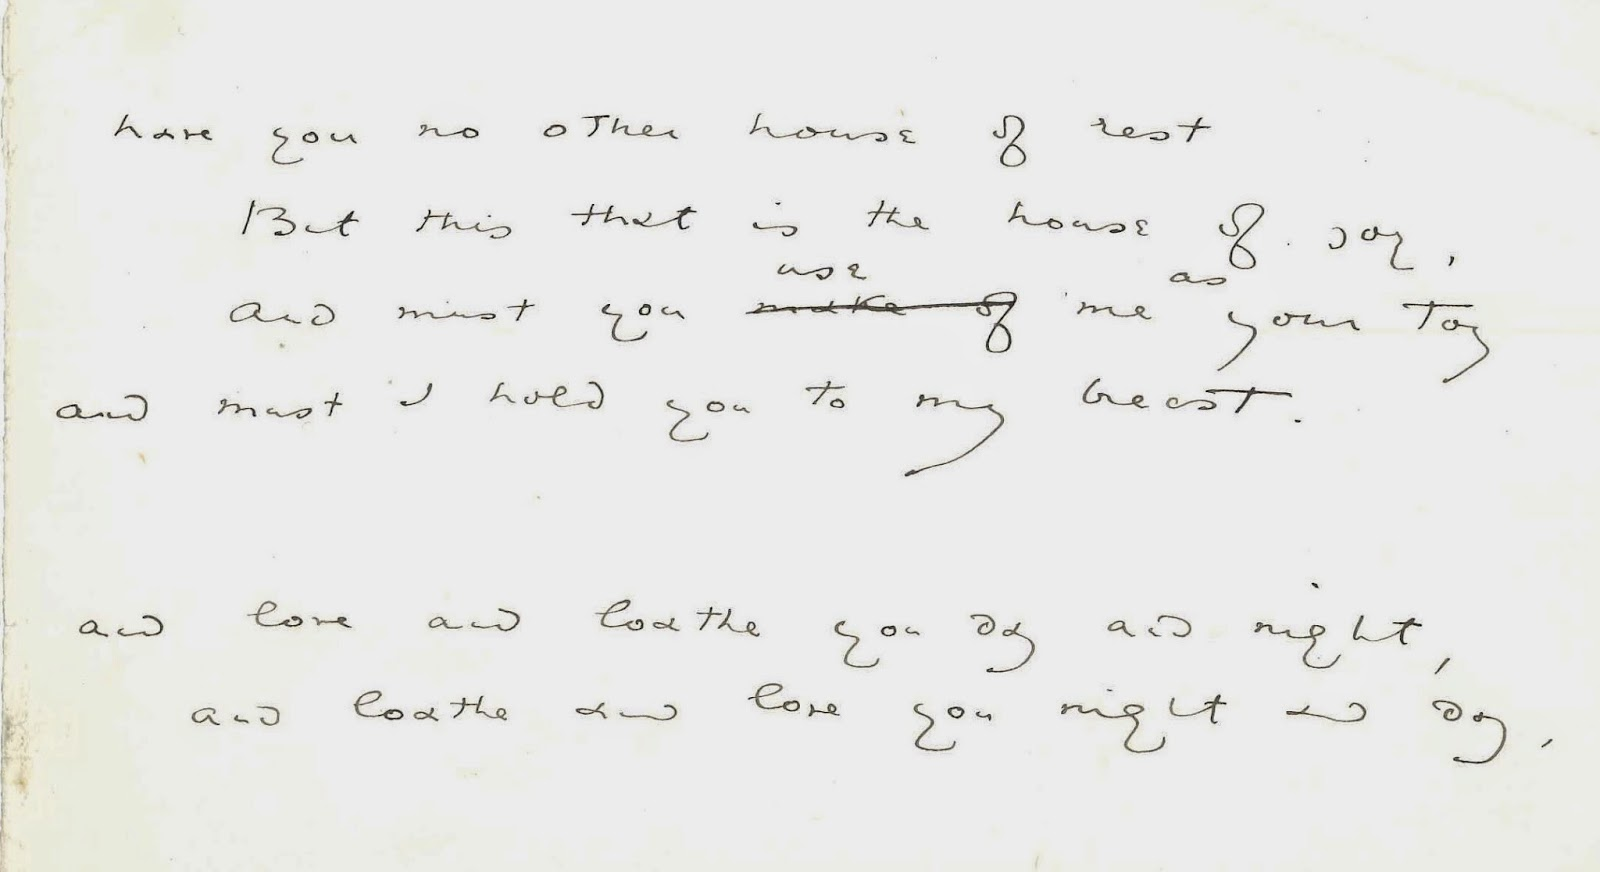 An excerpt of handwritten text.